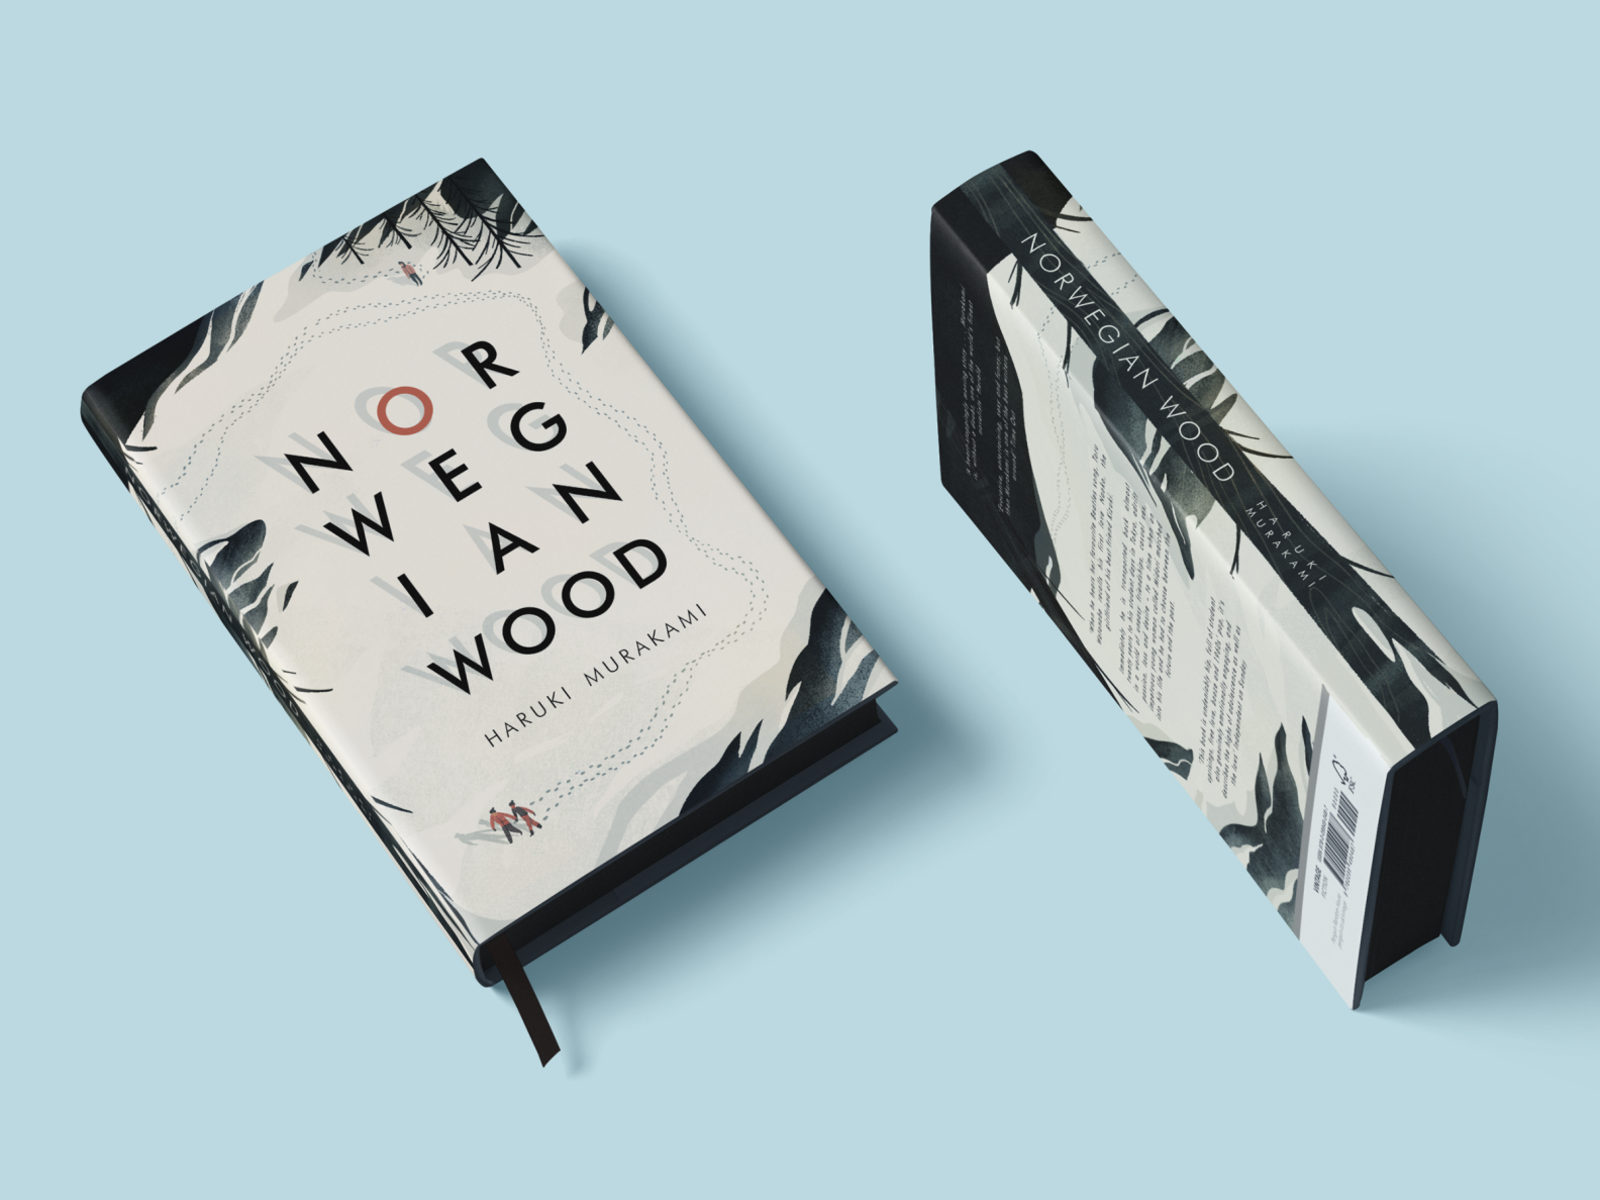 Norwegian Wood Book Cover by Lydia Hill